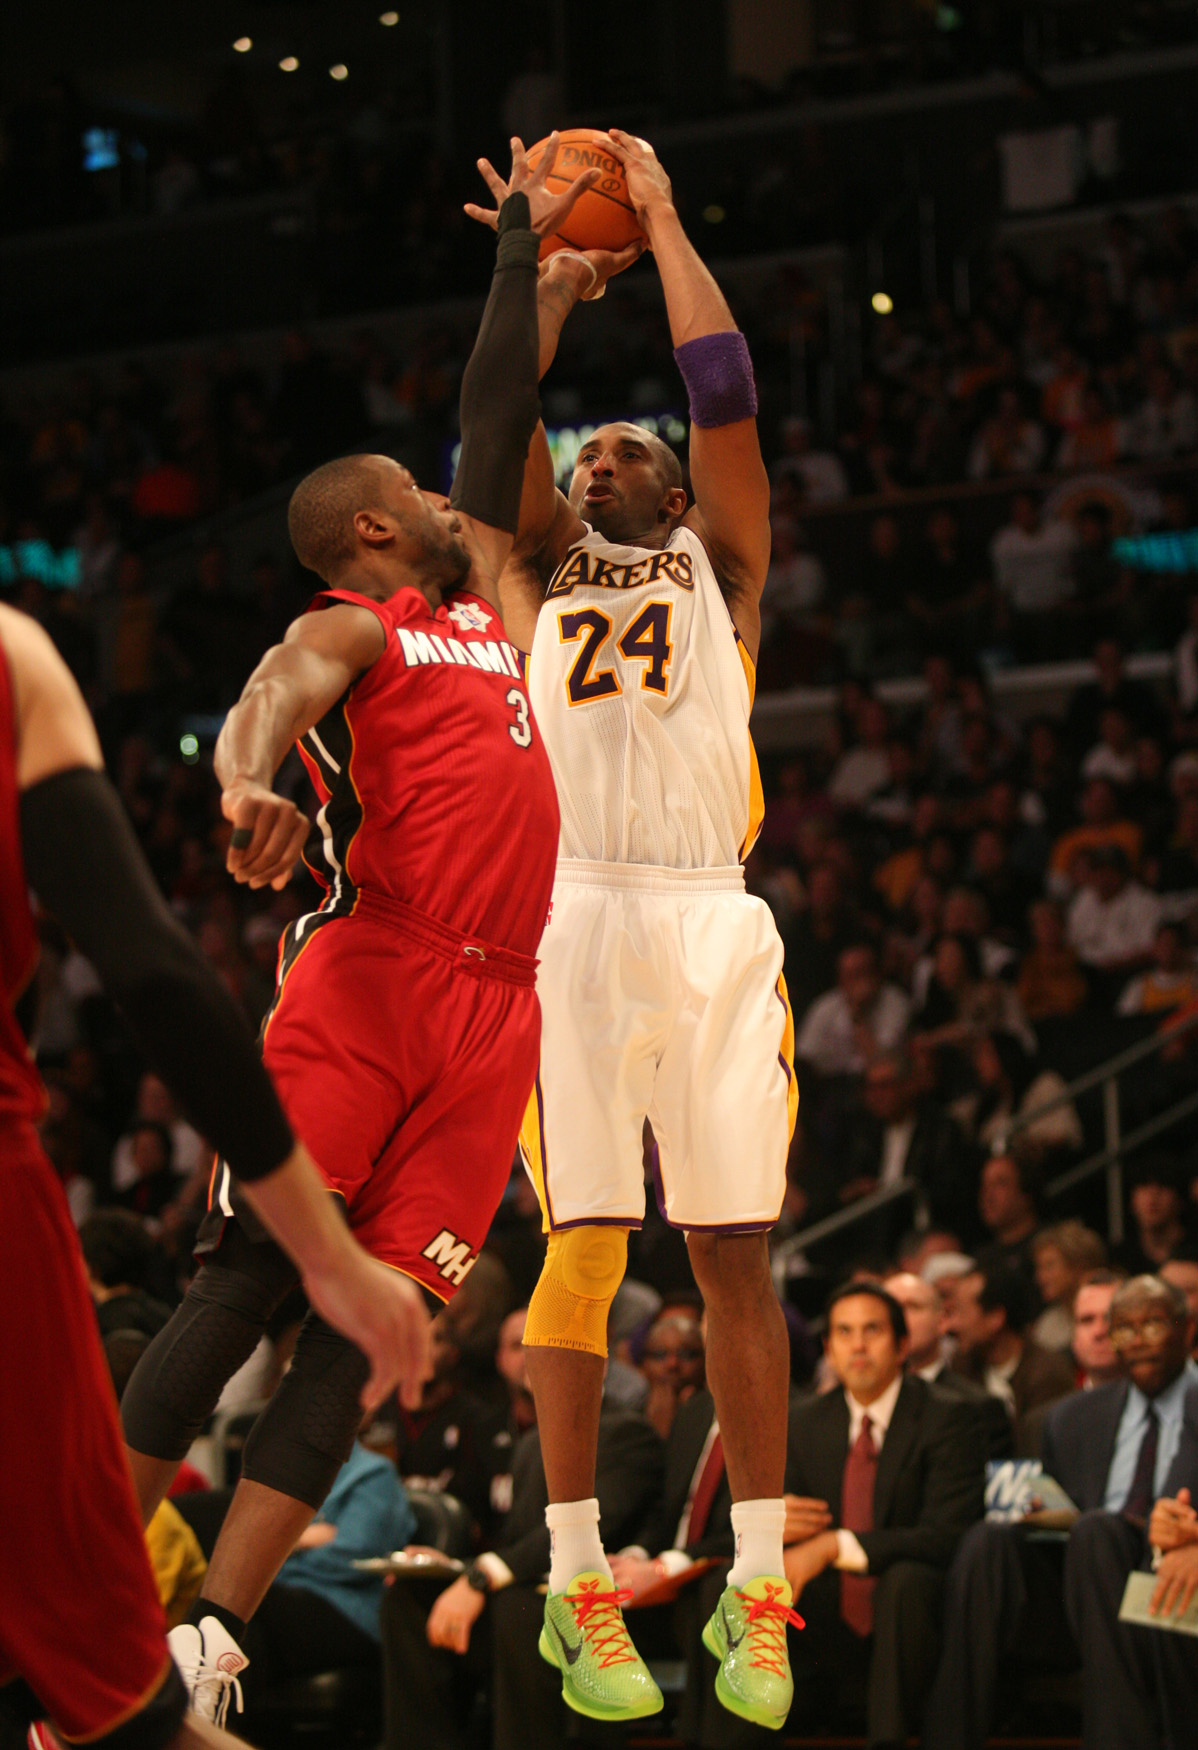 By Dennis J. Freeman Los Angeles Lakers superstar Kobe Bryant has gone toe-to-toe with the best players in the NBA....